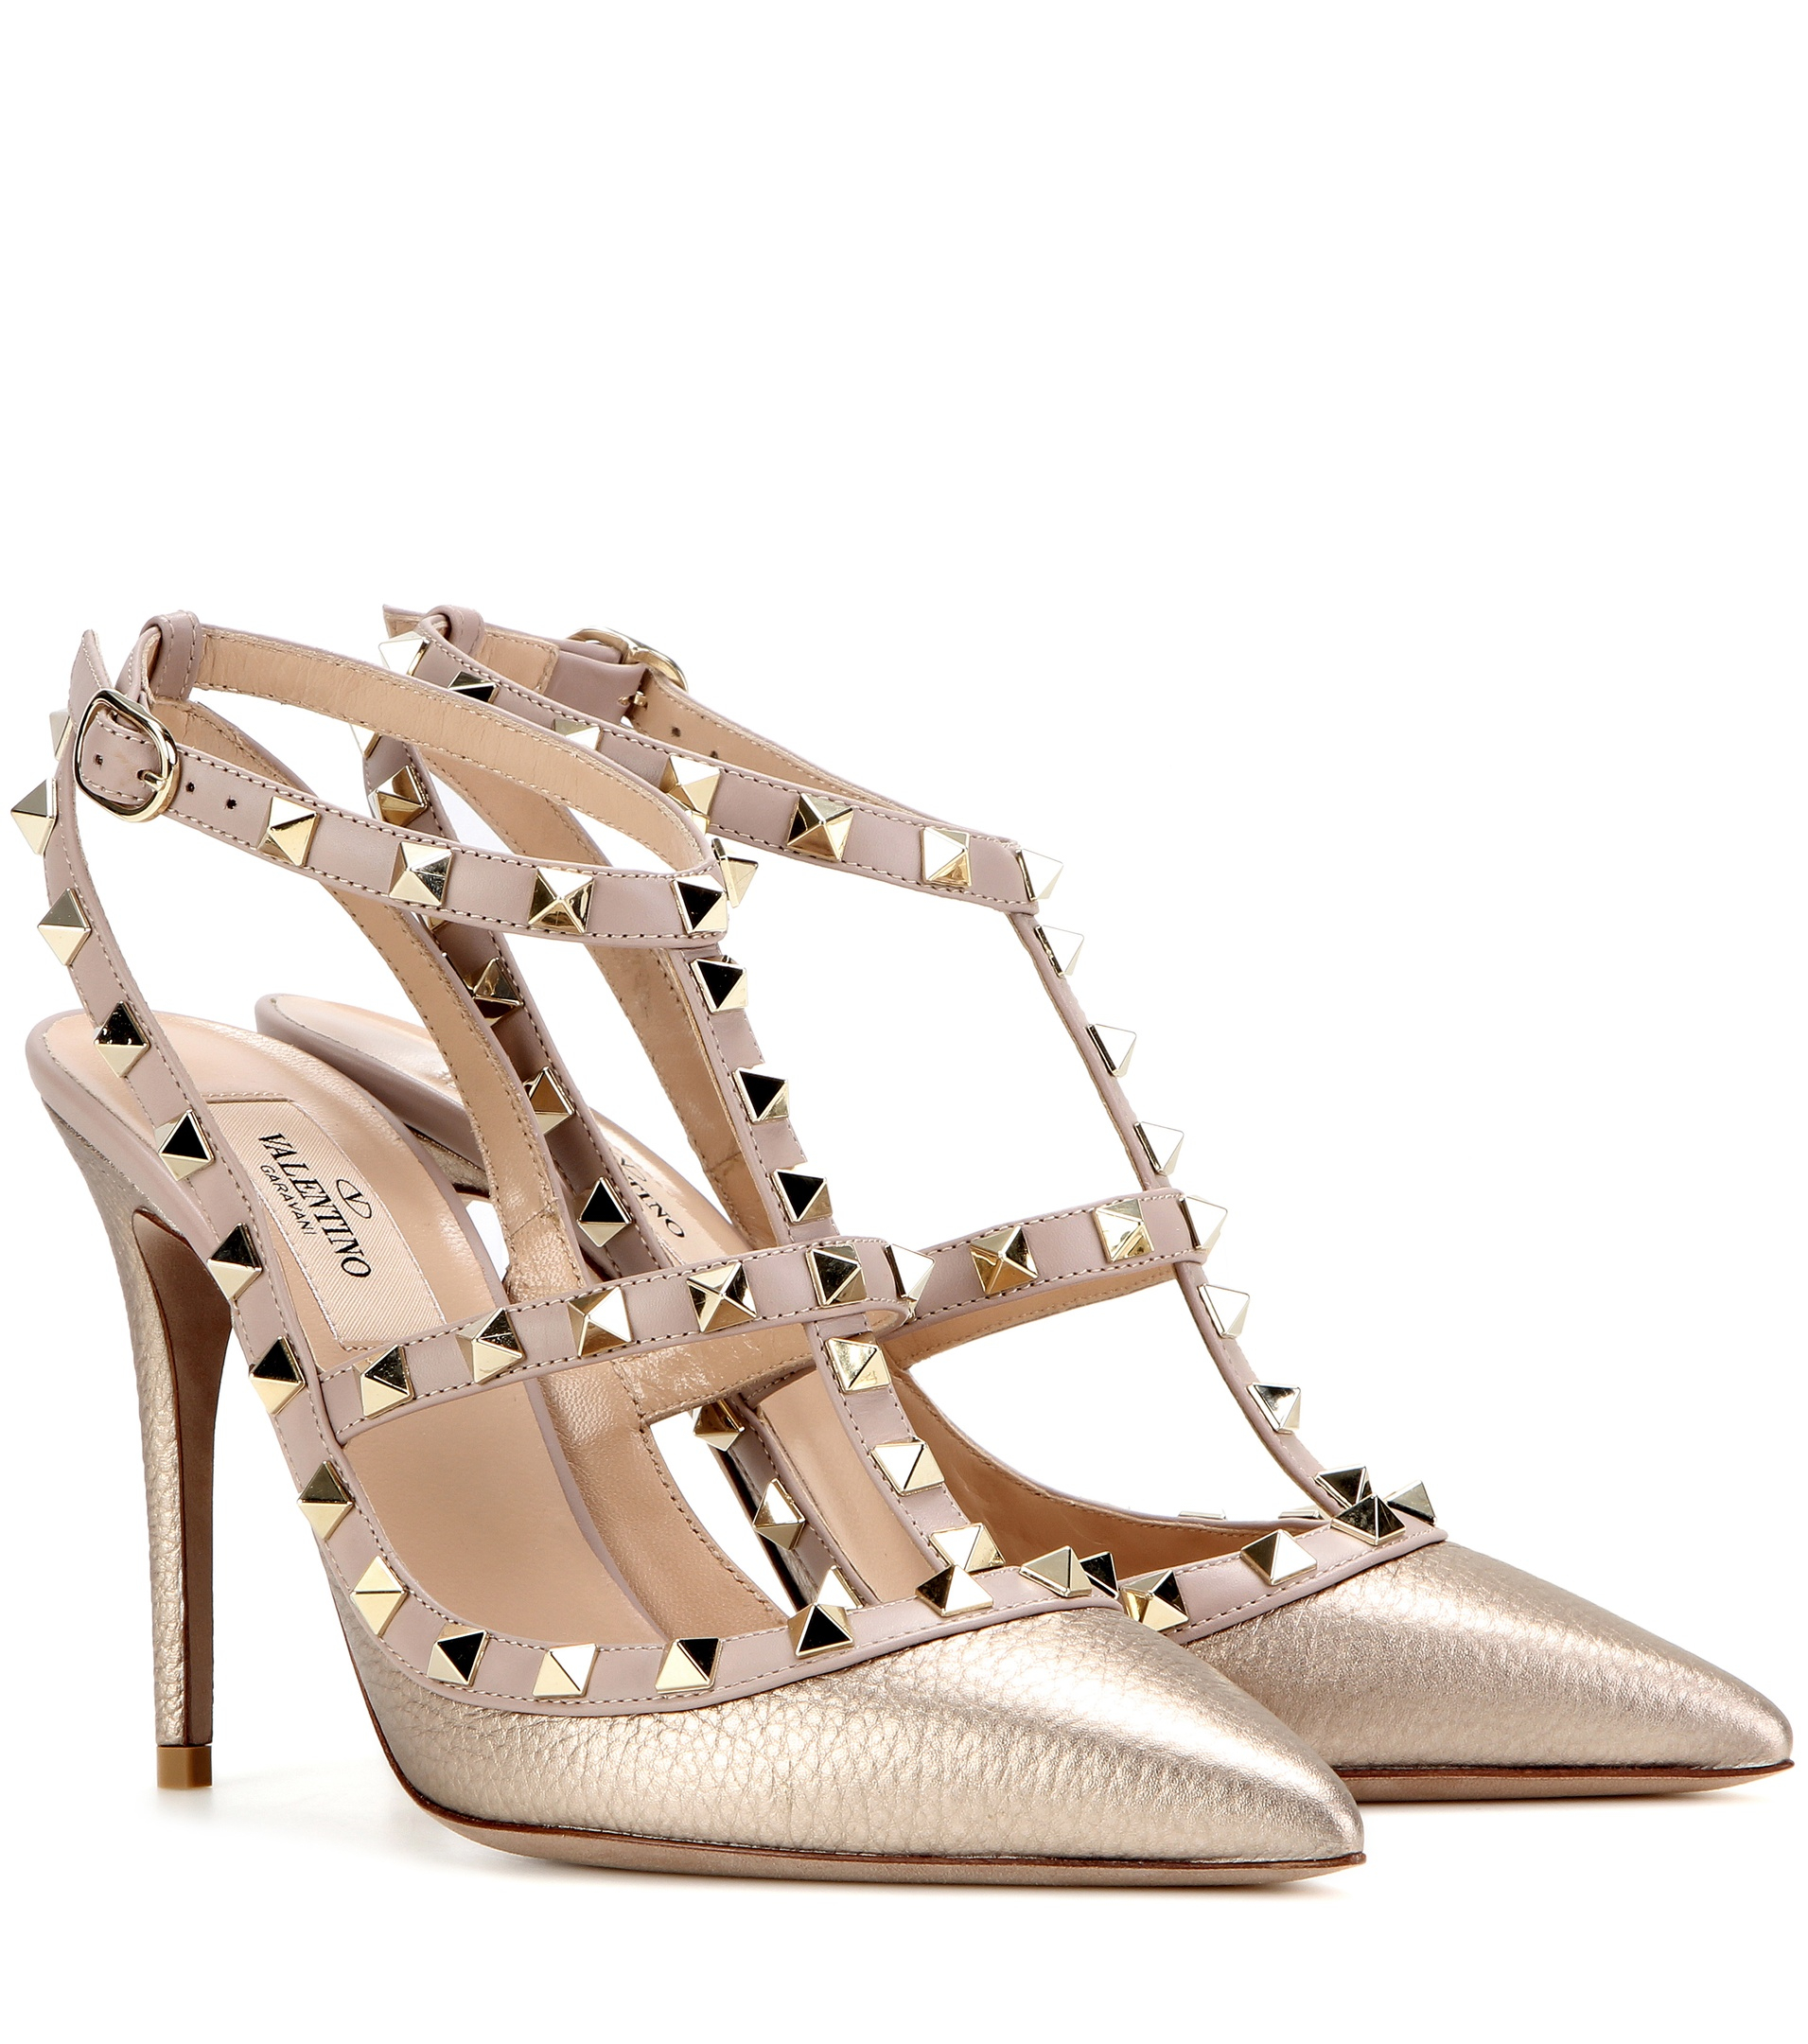 Valentino Garavani Rockstud Metallic Leather Pumps in ...